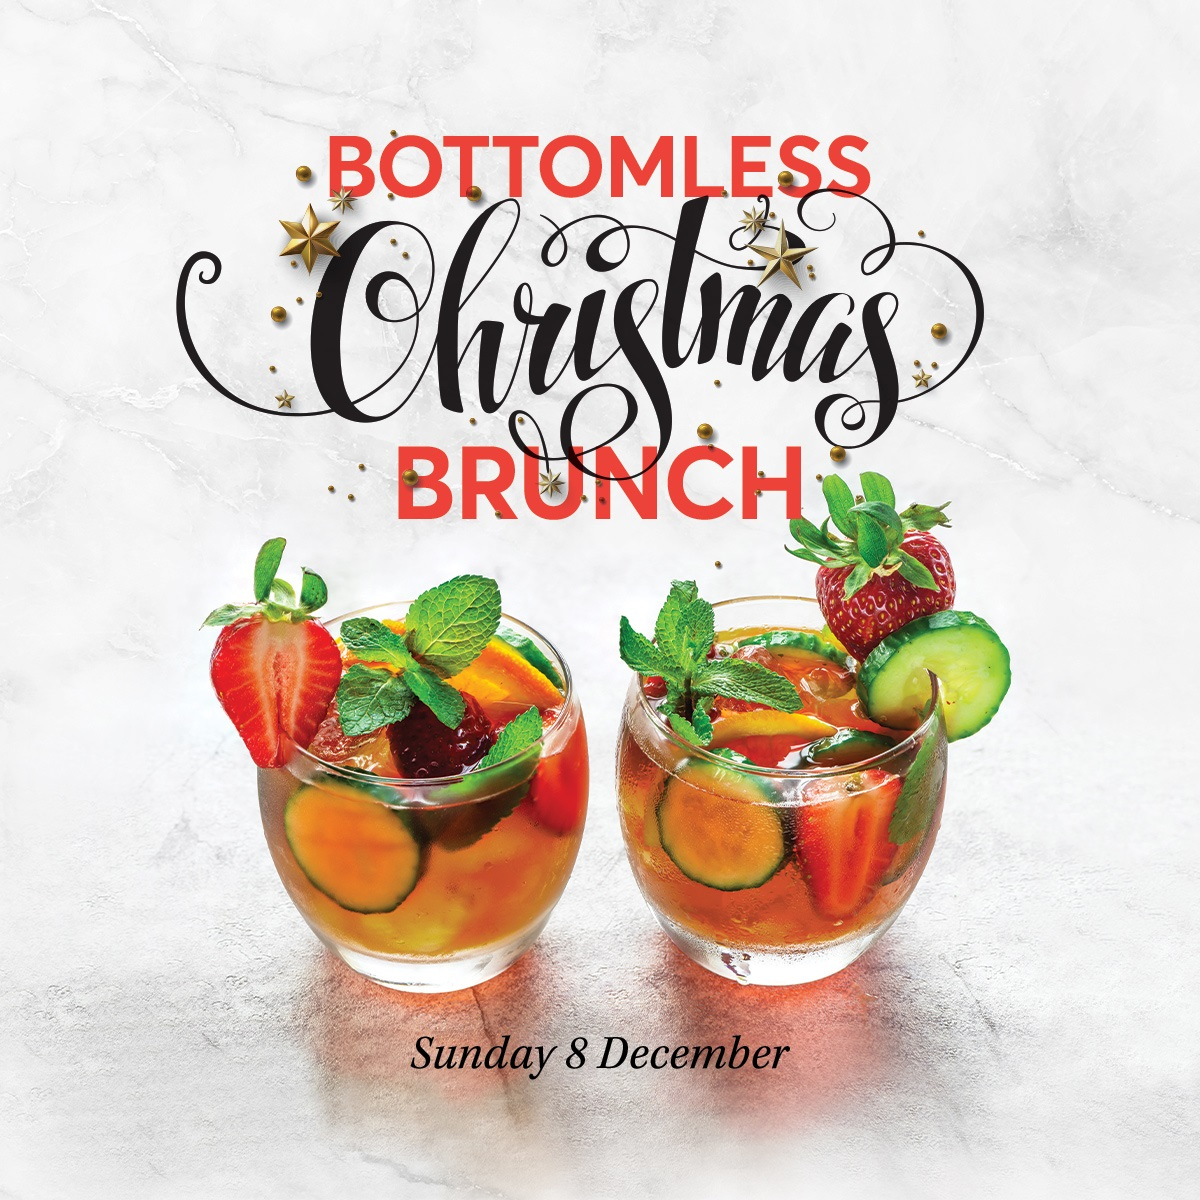 Bottomless Christmas Brunch Square